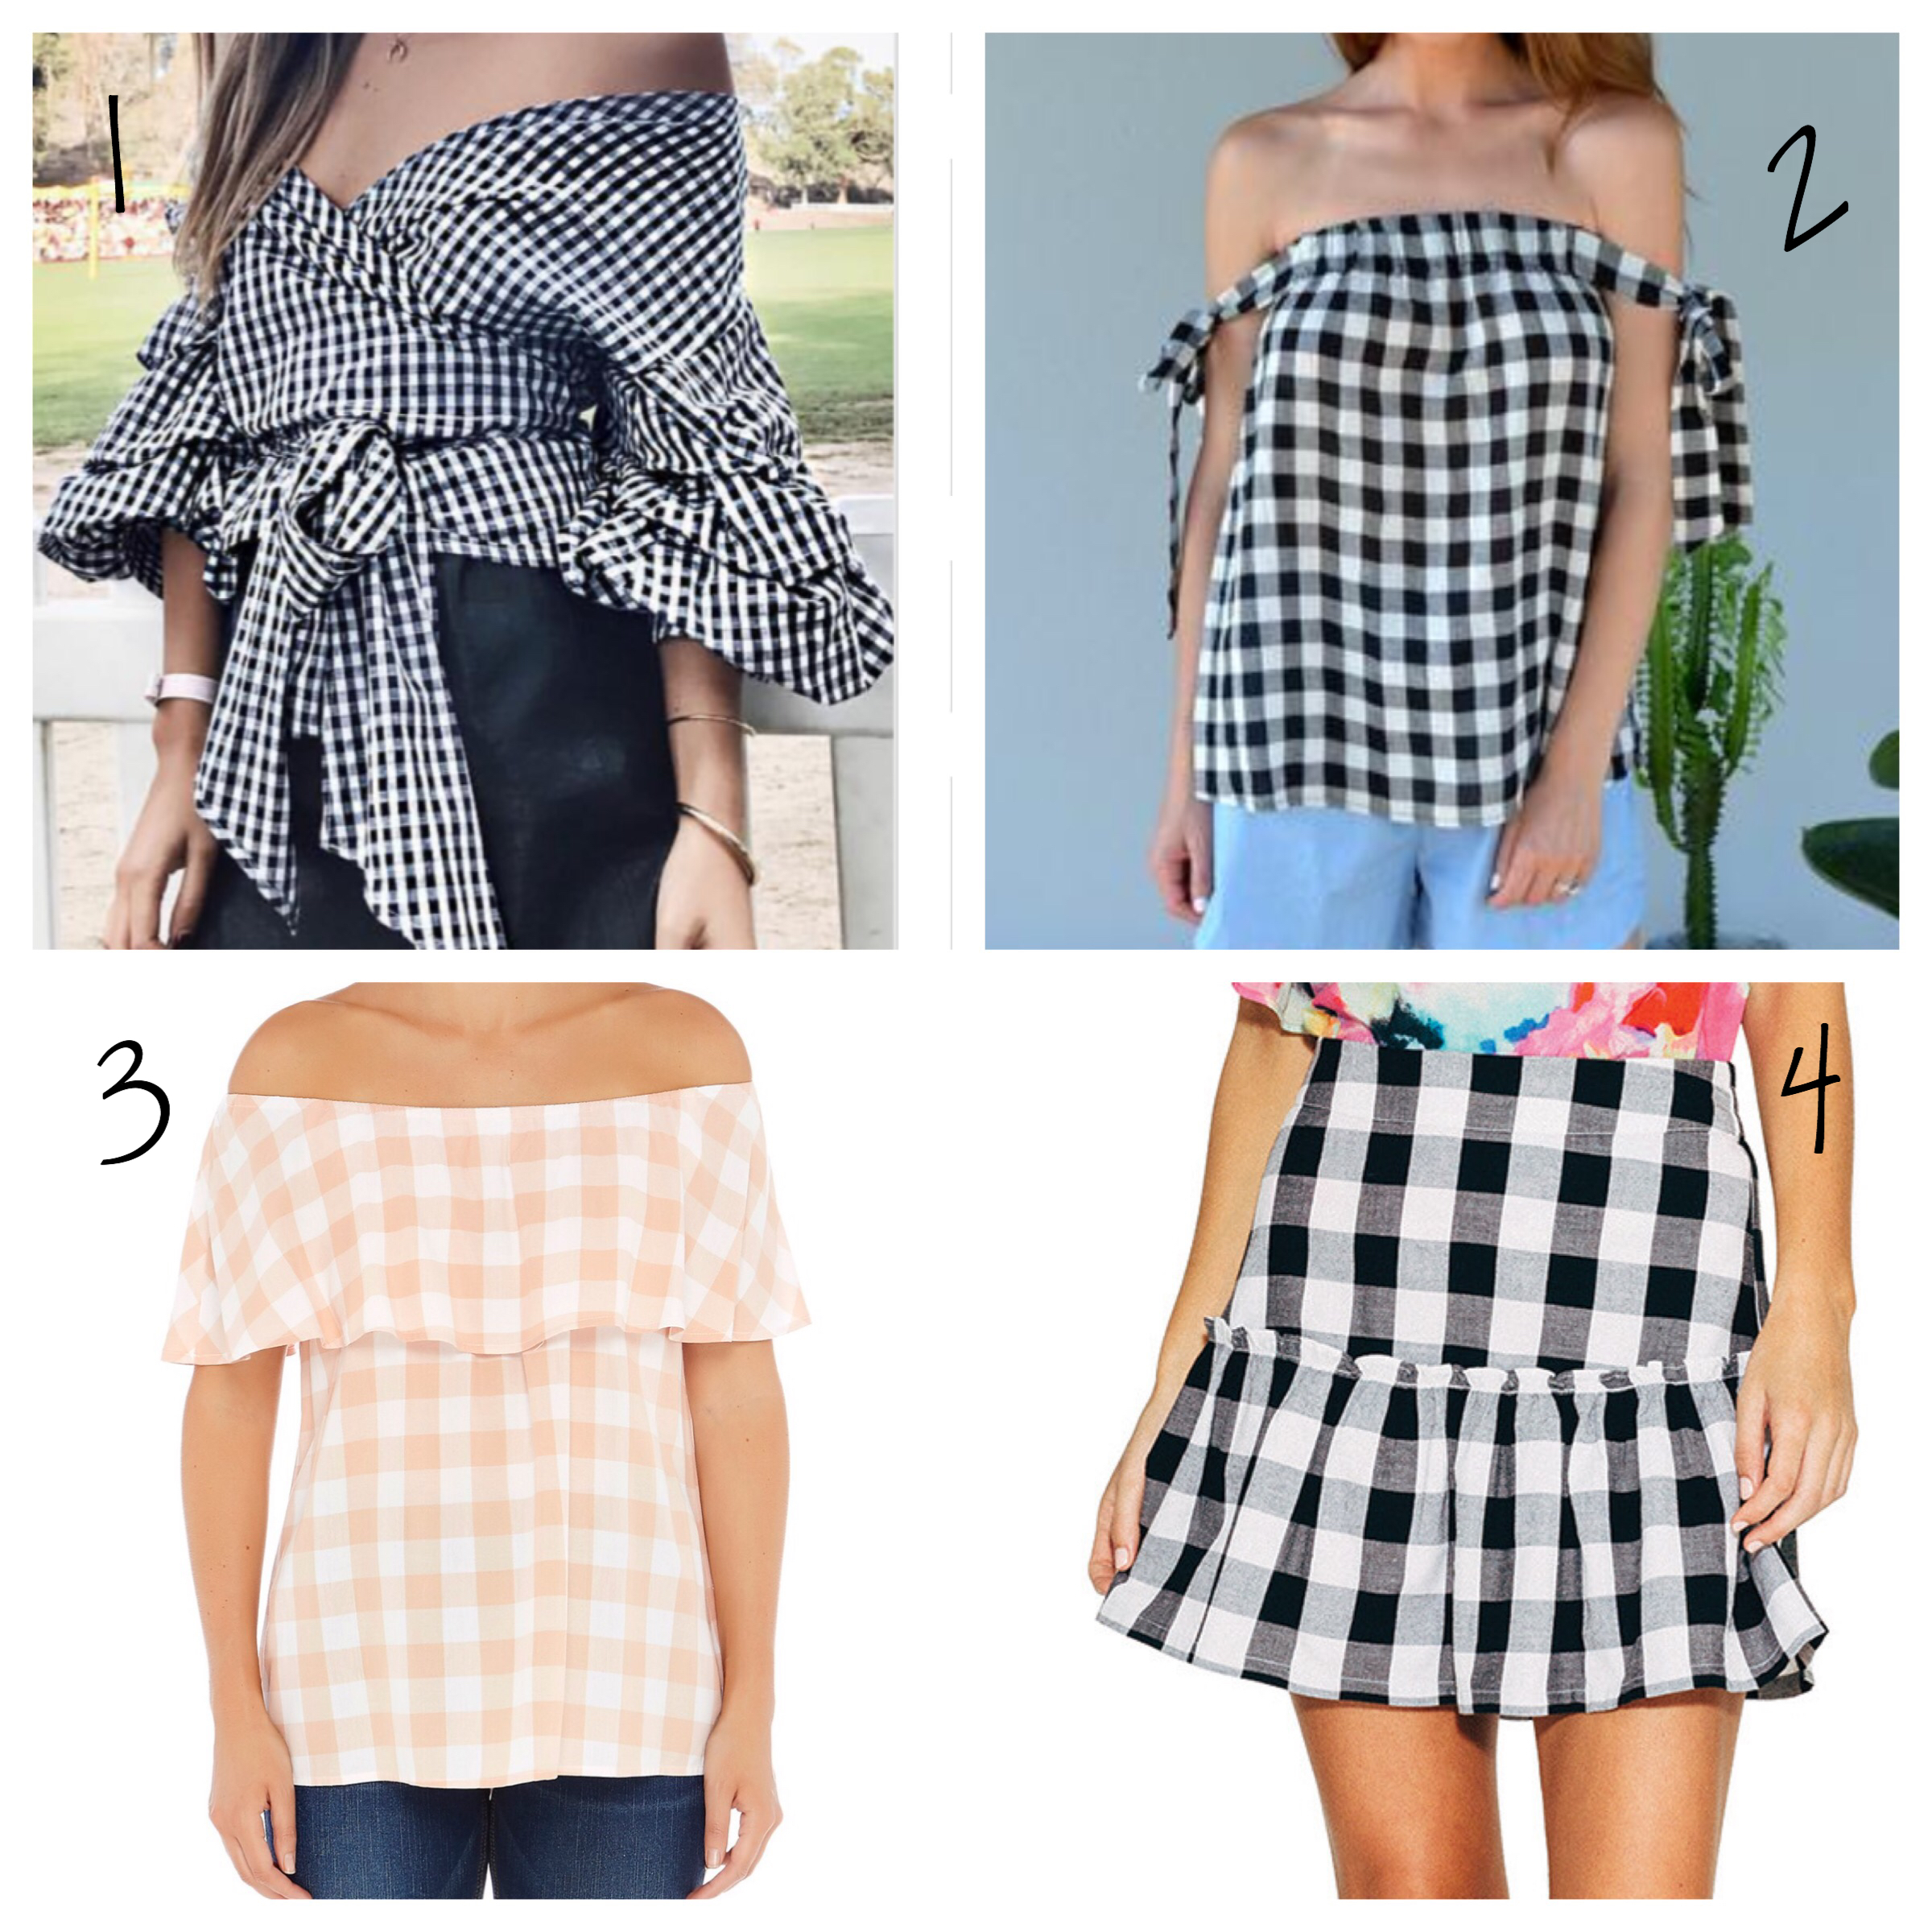 gingham outfit updates under 100